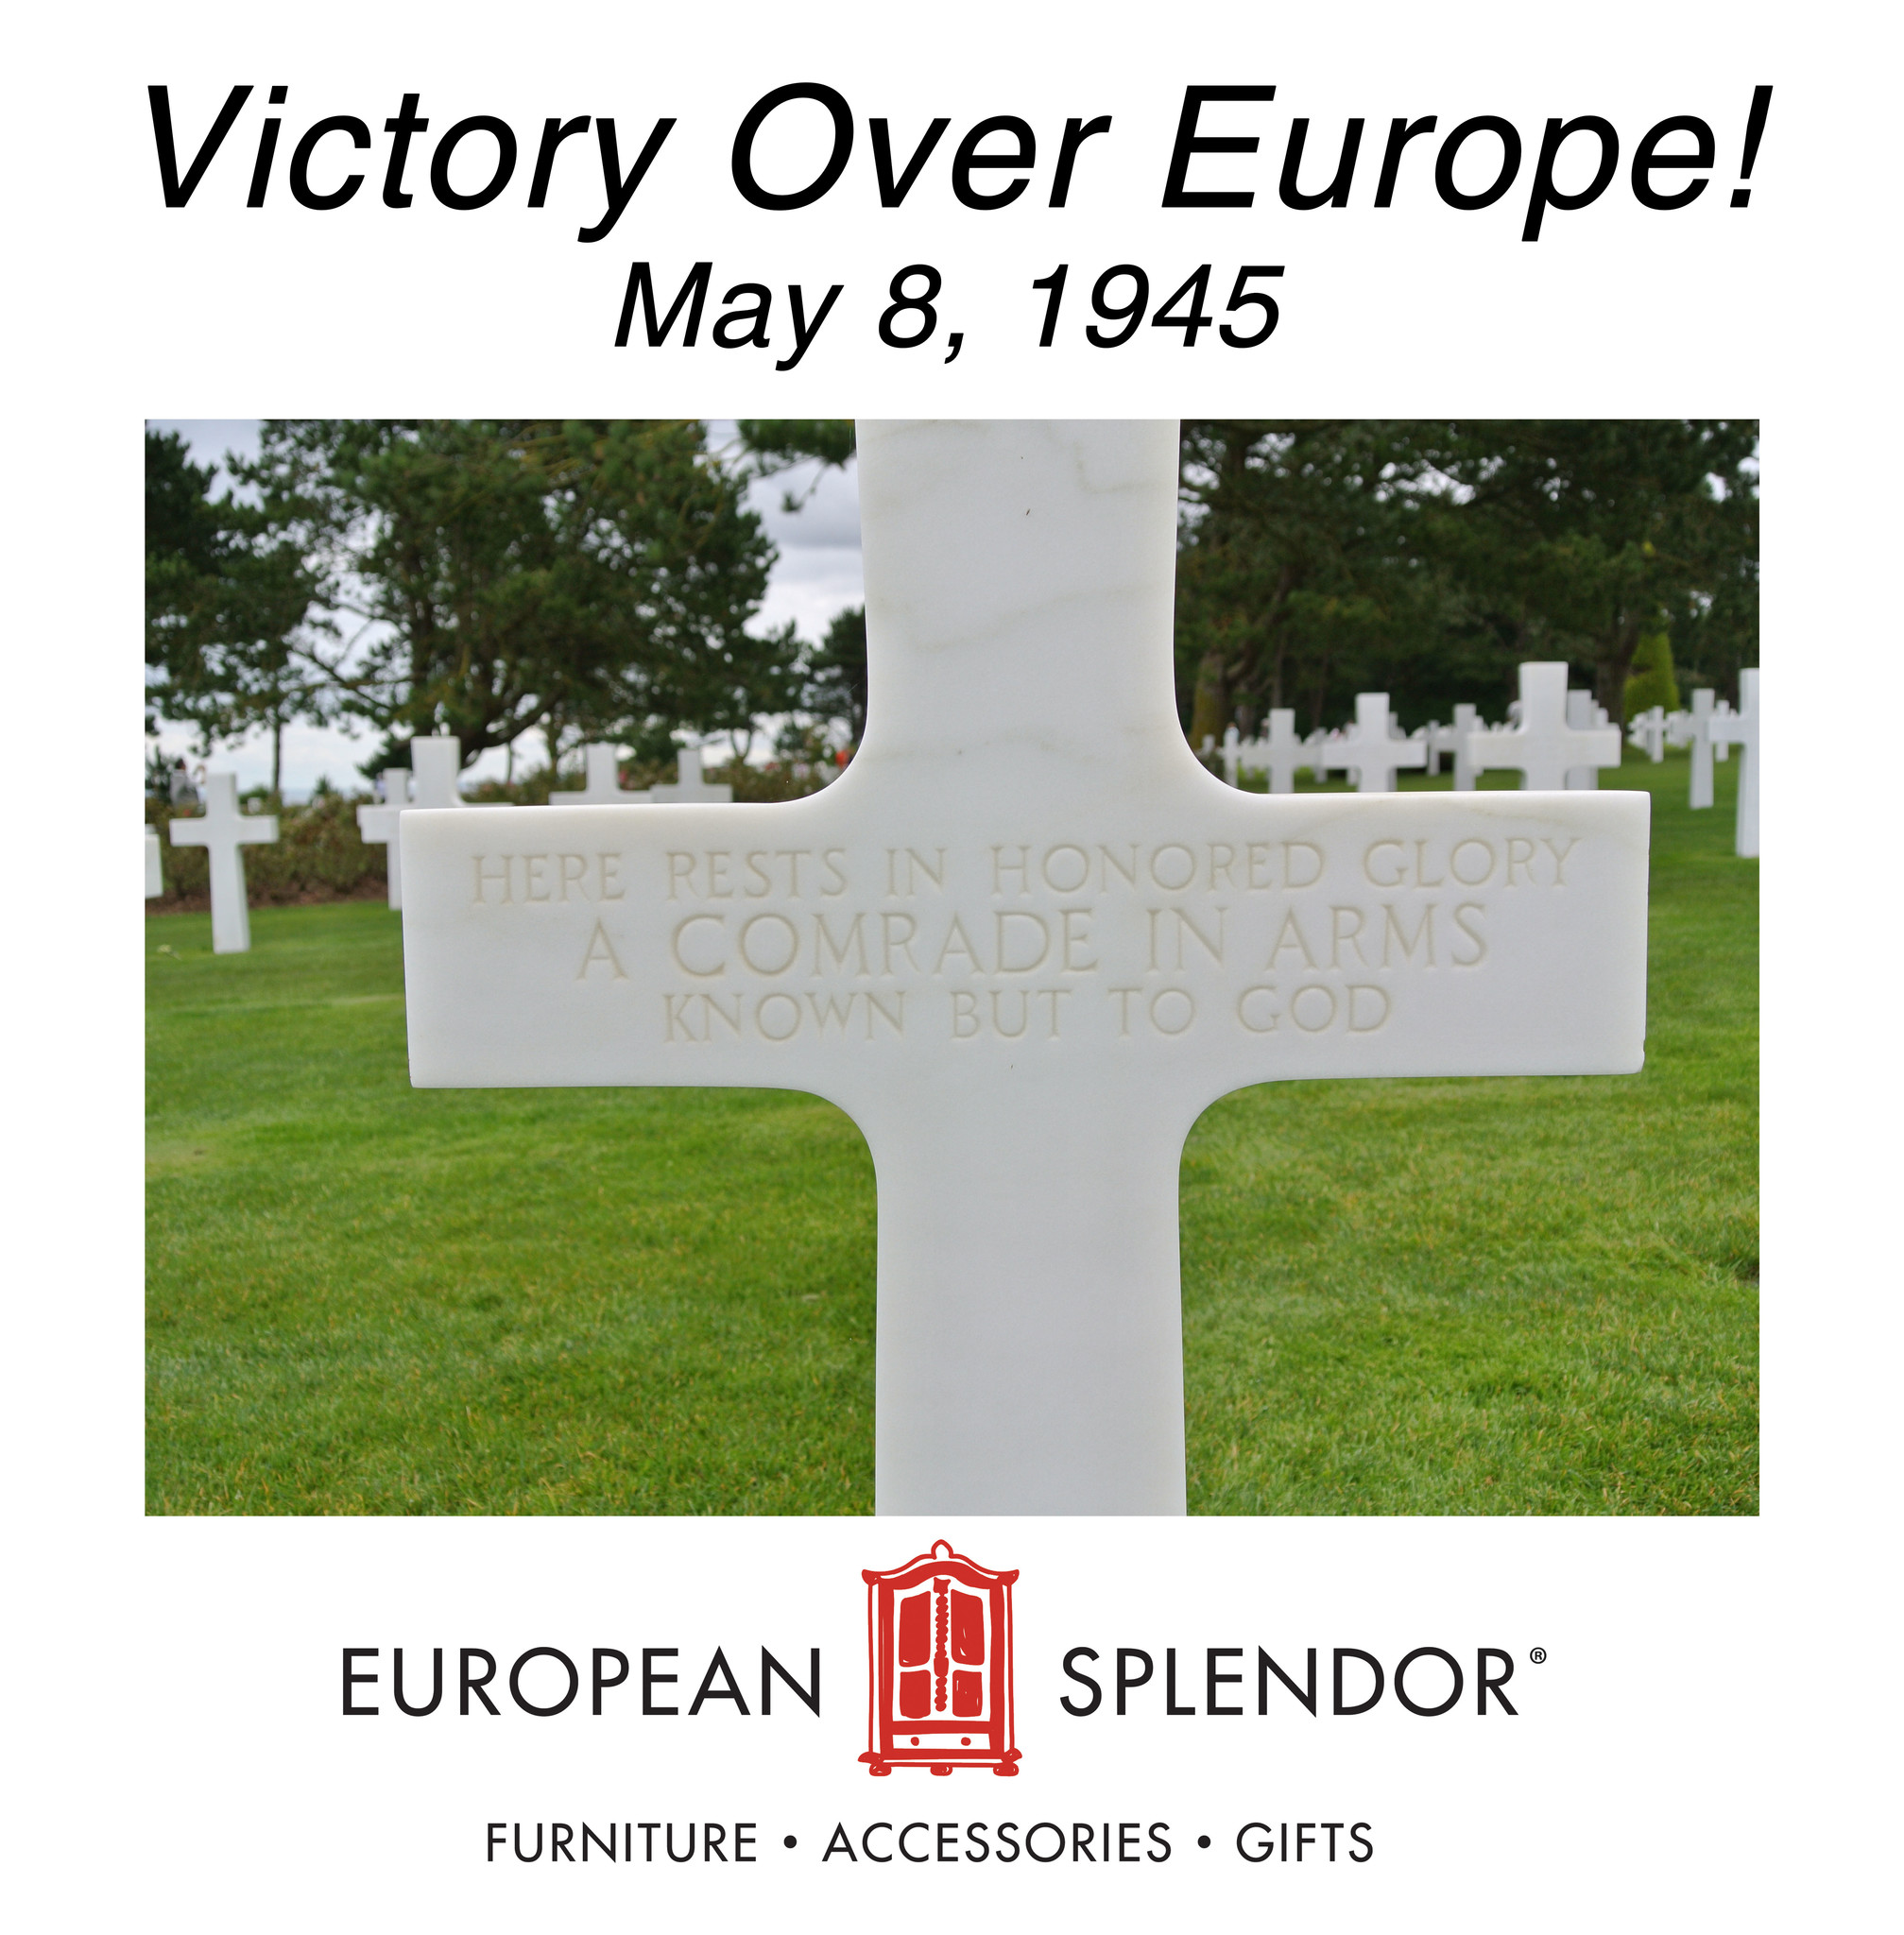 Victory Over Europe! May 8, 1945!